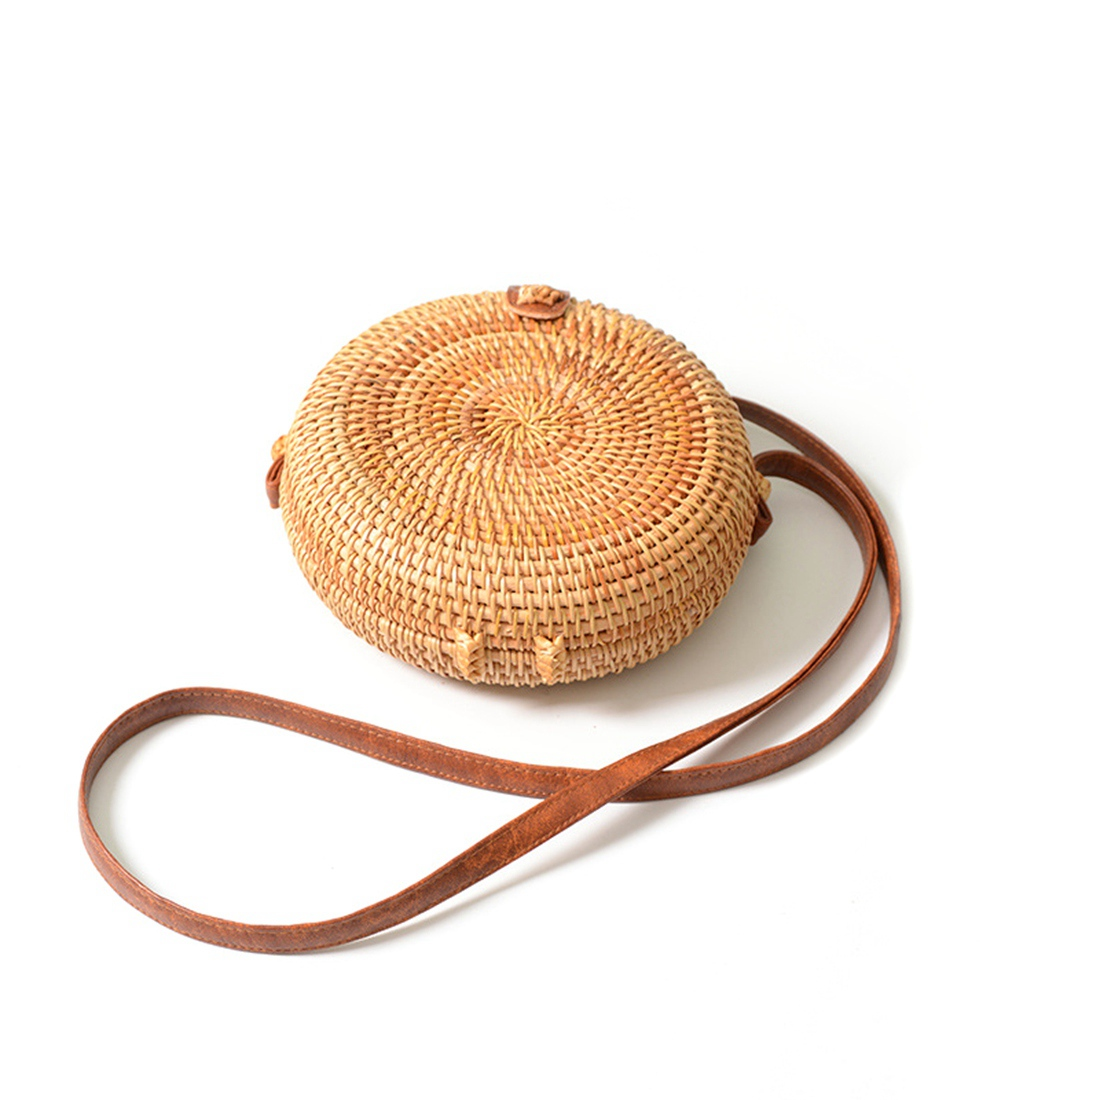 INS New Ladies Hand-woven Bag Round Rattan Retro Literary Hand-woven Leather Buckle Package Bohemia Beach Messenger Bag